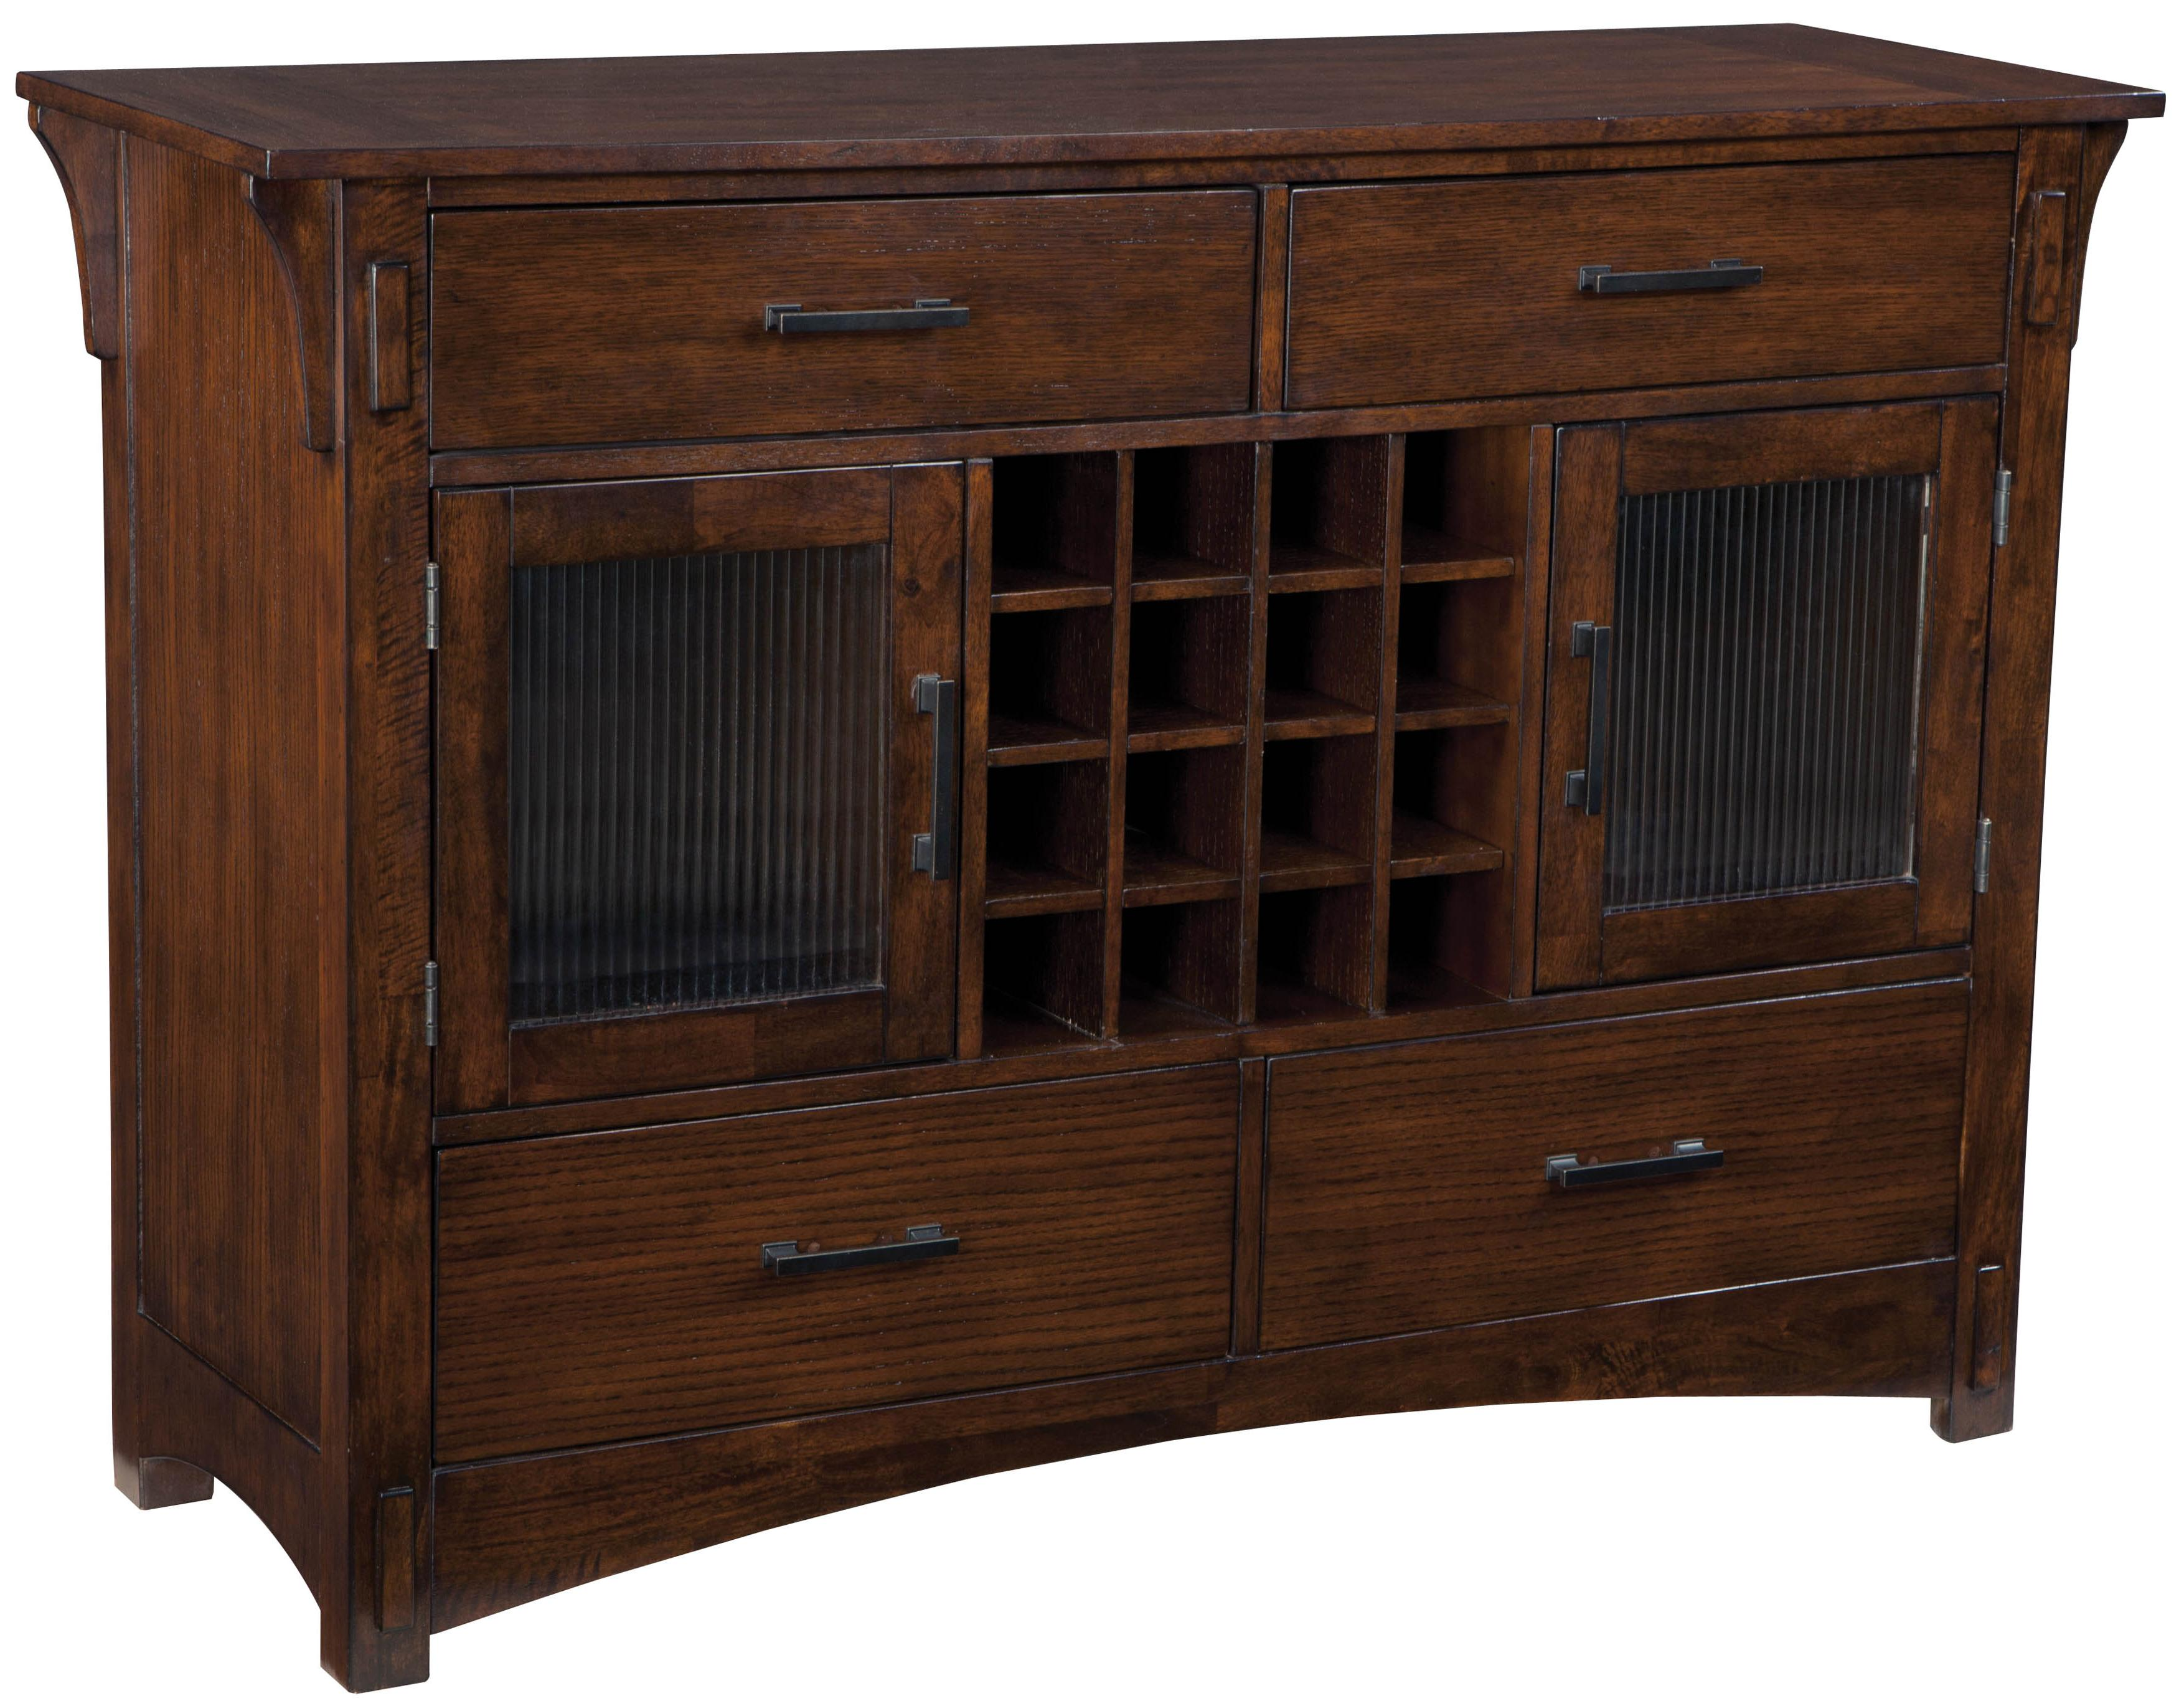 Standard Furniture Artisan Loft Server - Item Number: 13622